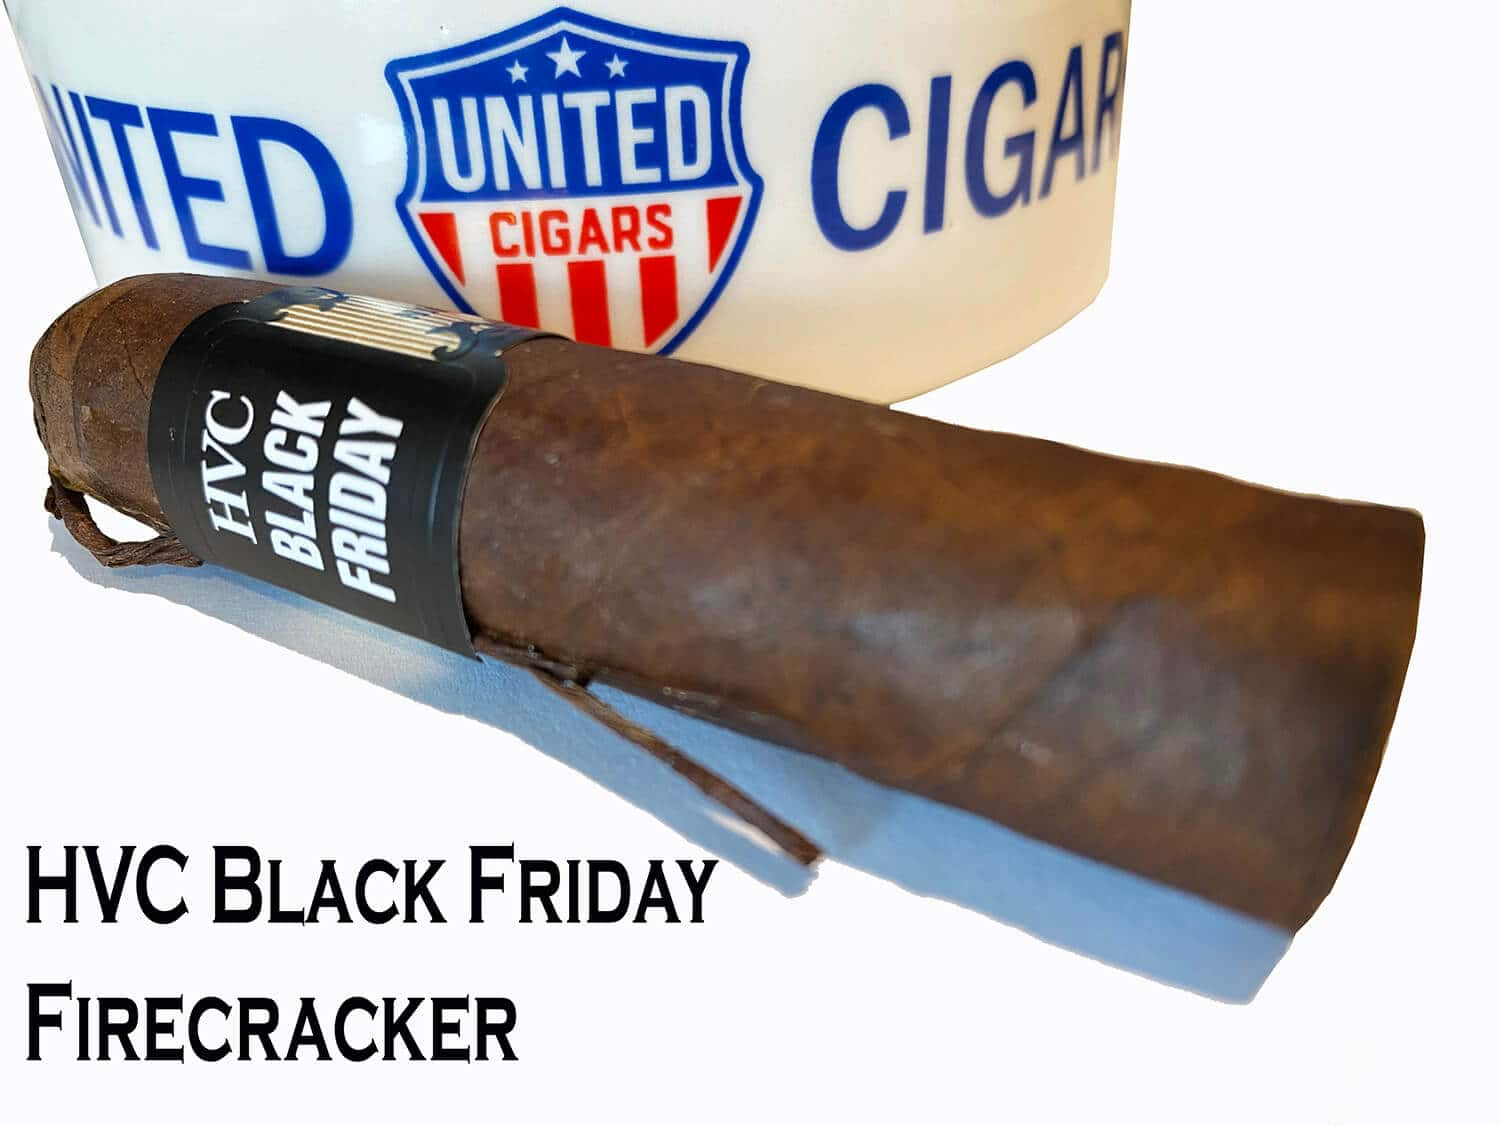 Cigar News: United Cigars Announces HVC Black Friday Firecracker